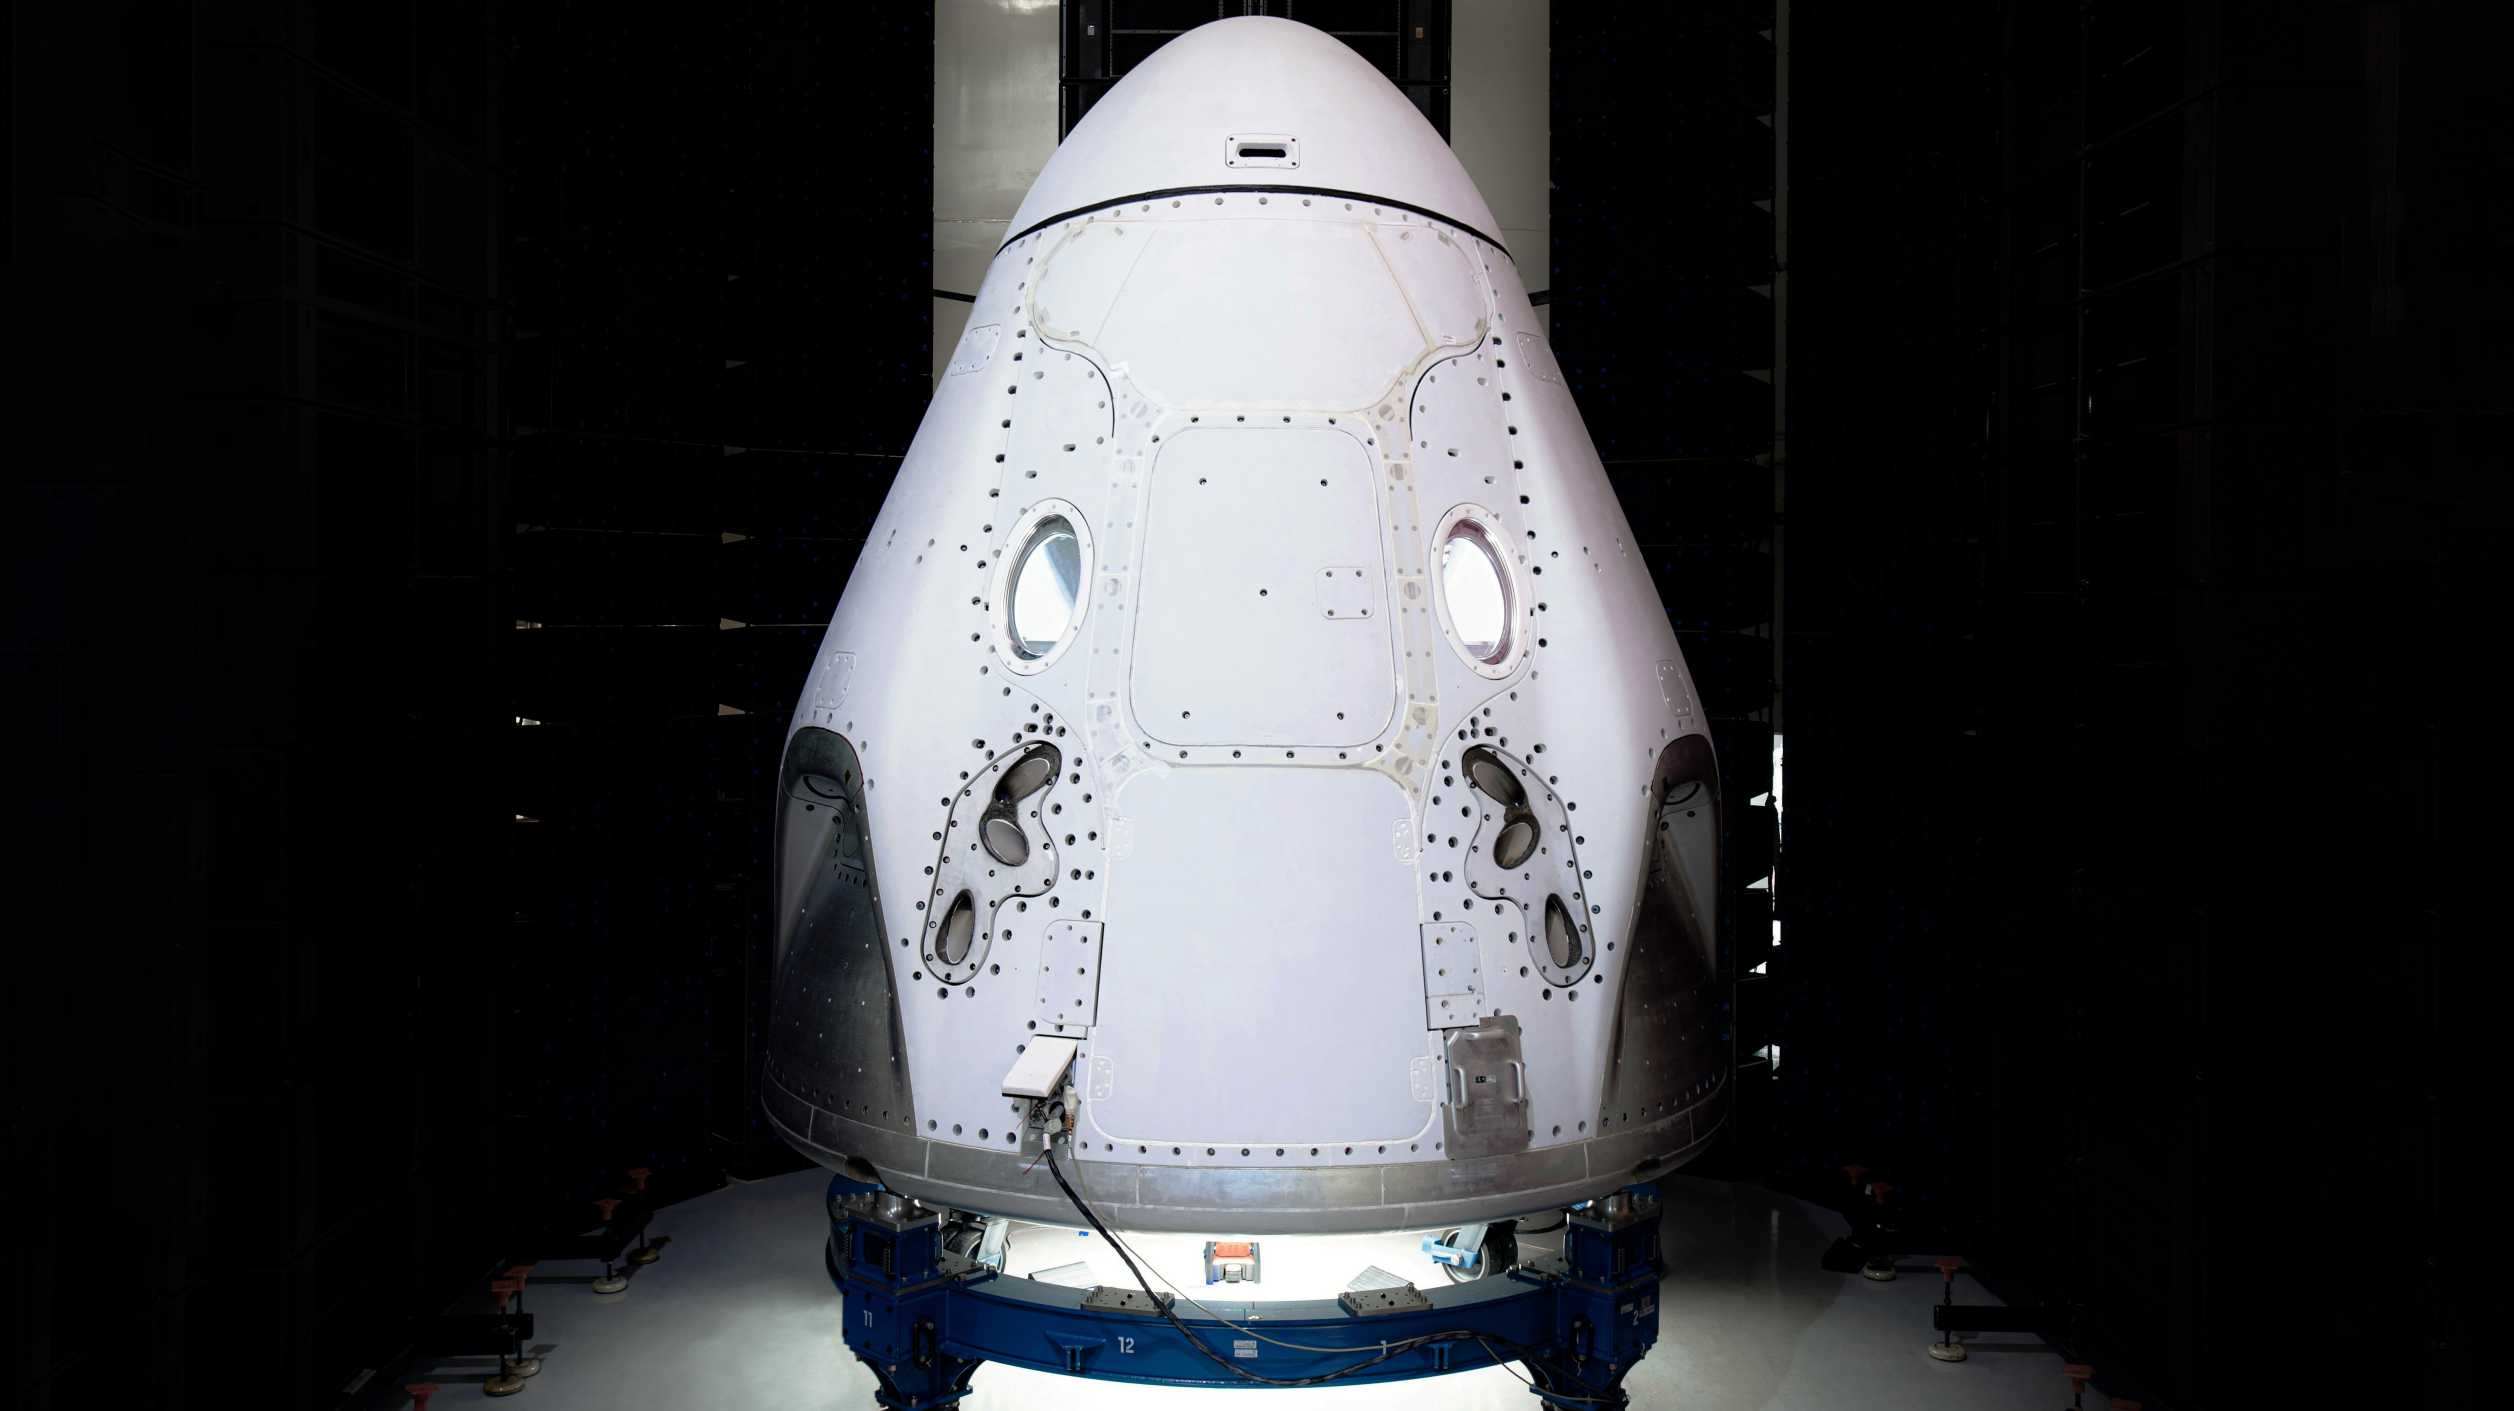 NASA is training SpaceX's first Crew Dragon astronauts for a much longer mission in space